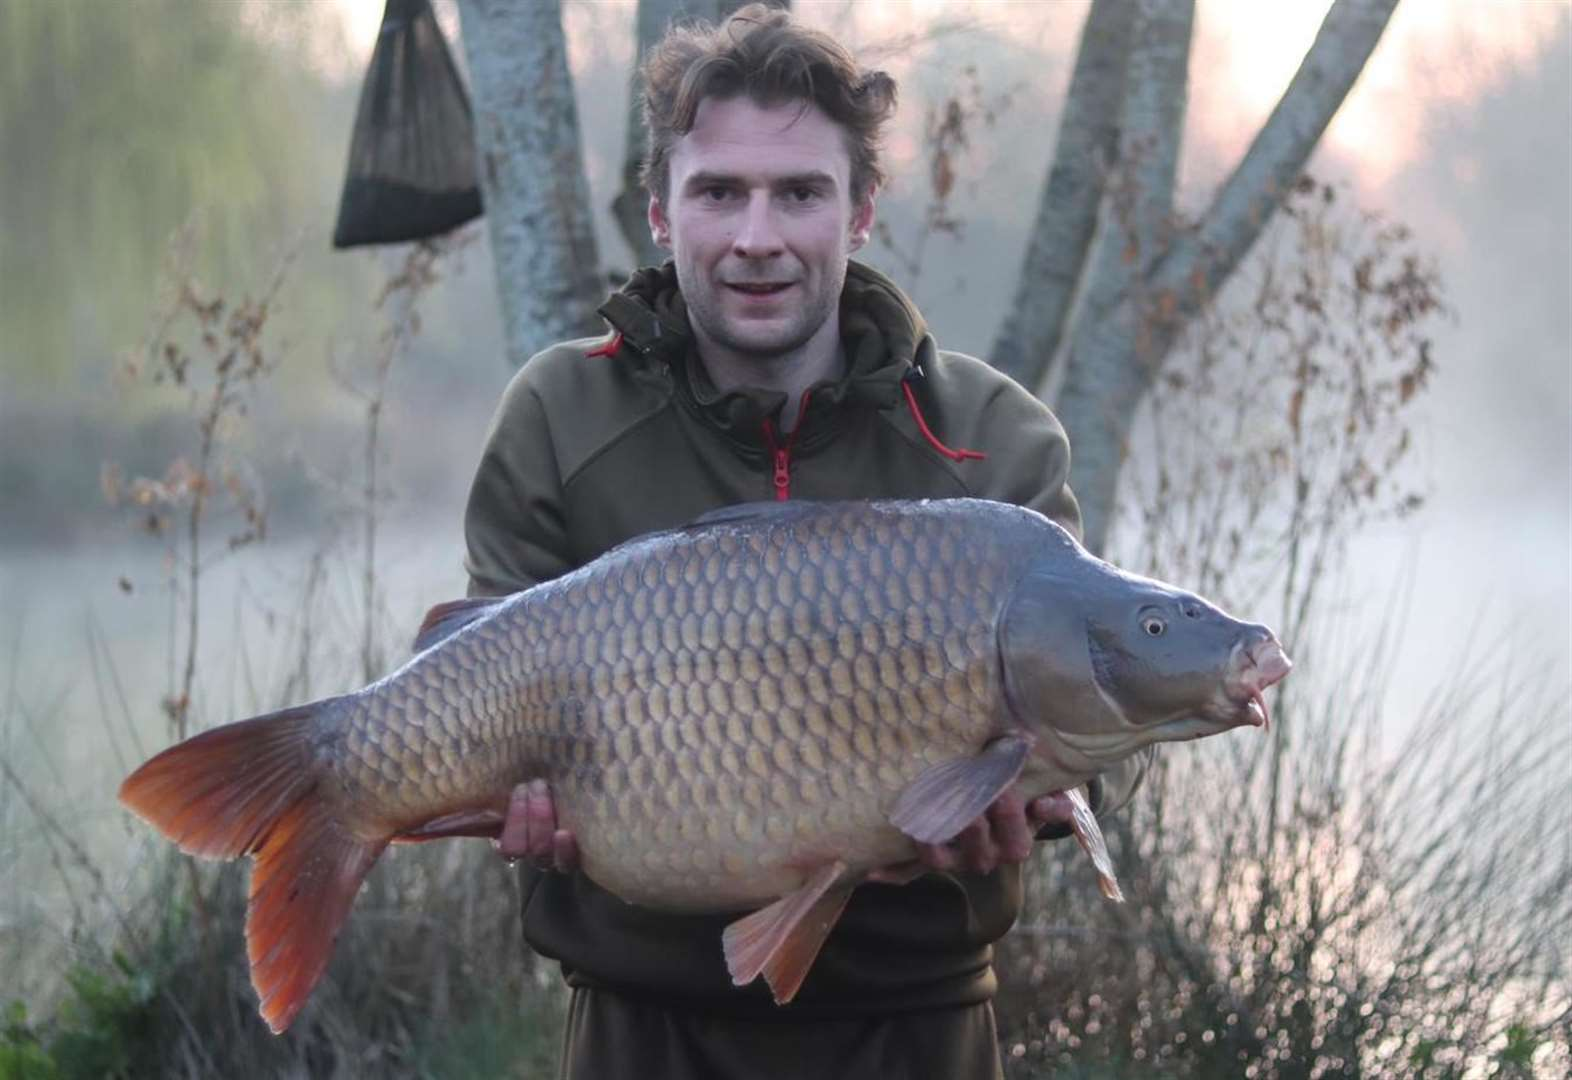 Wesley Shrubsole angling: This fish is a stunner